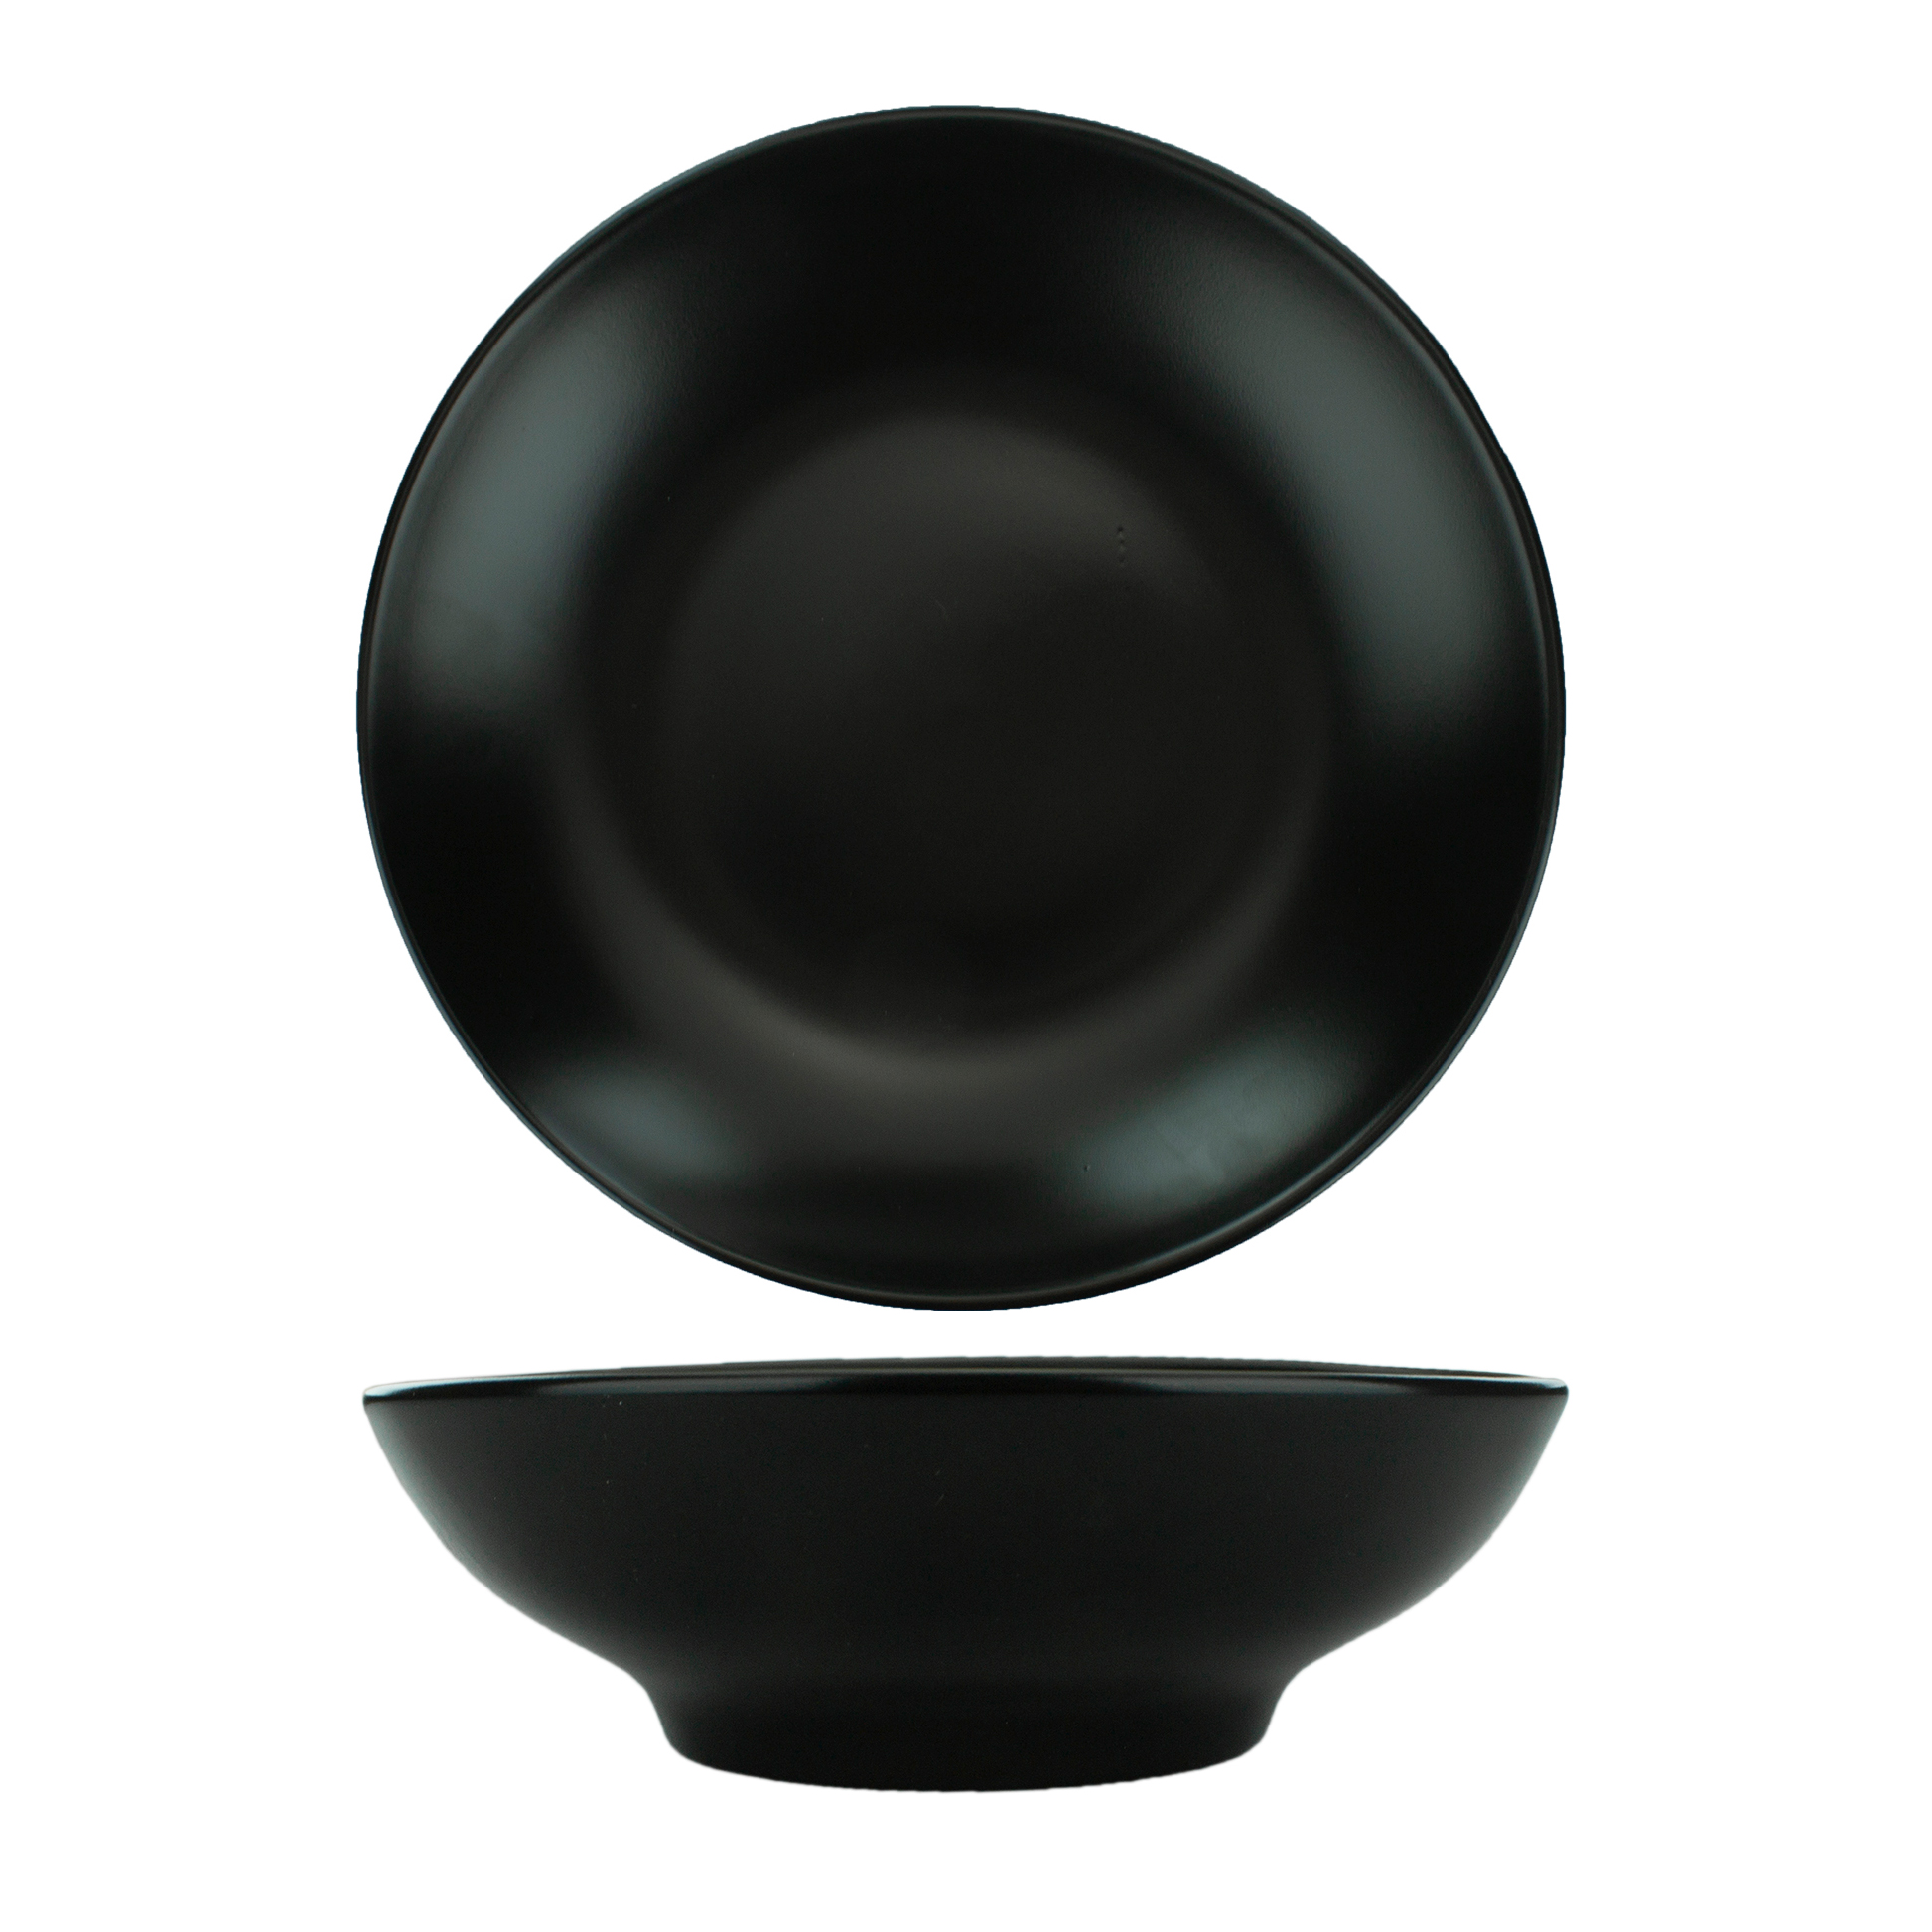 International Tableware TN-207-MB china, bowl, 17 - 32 oz